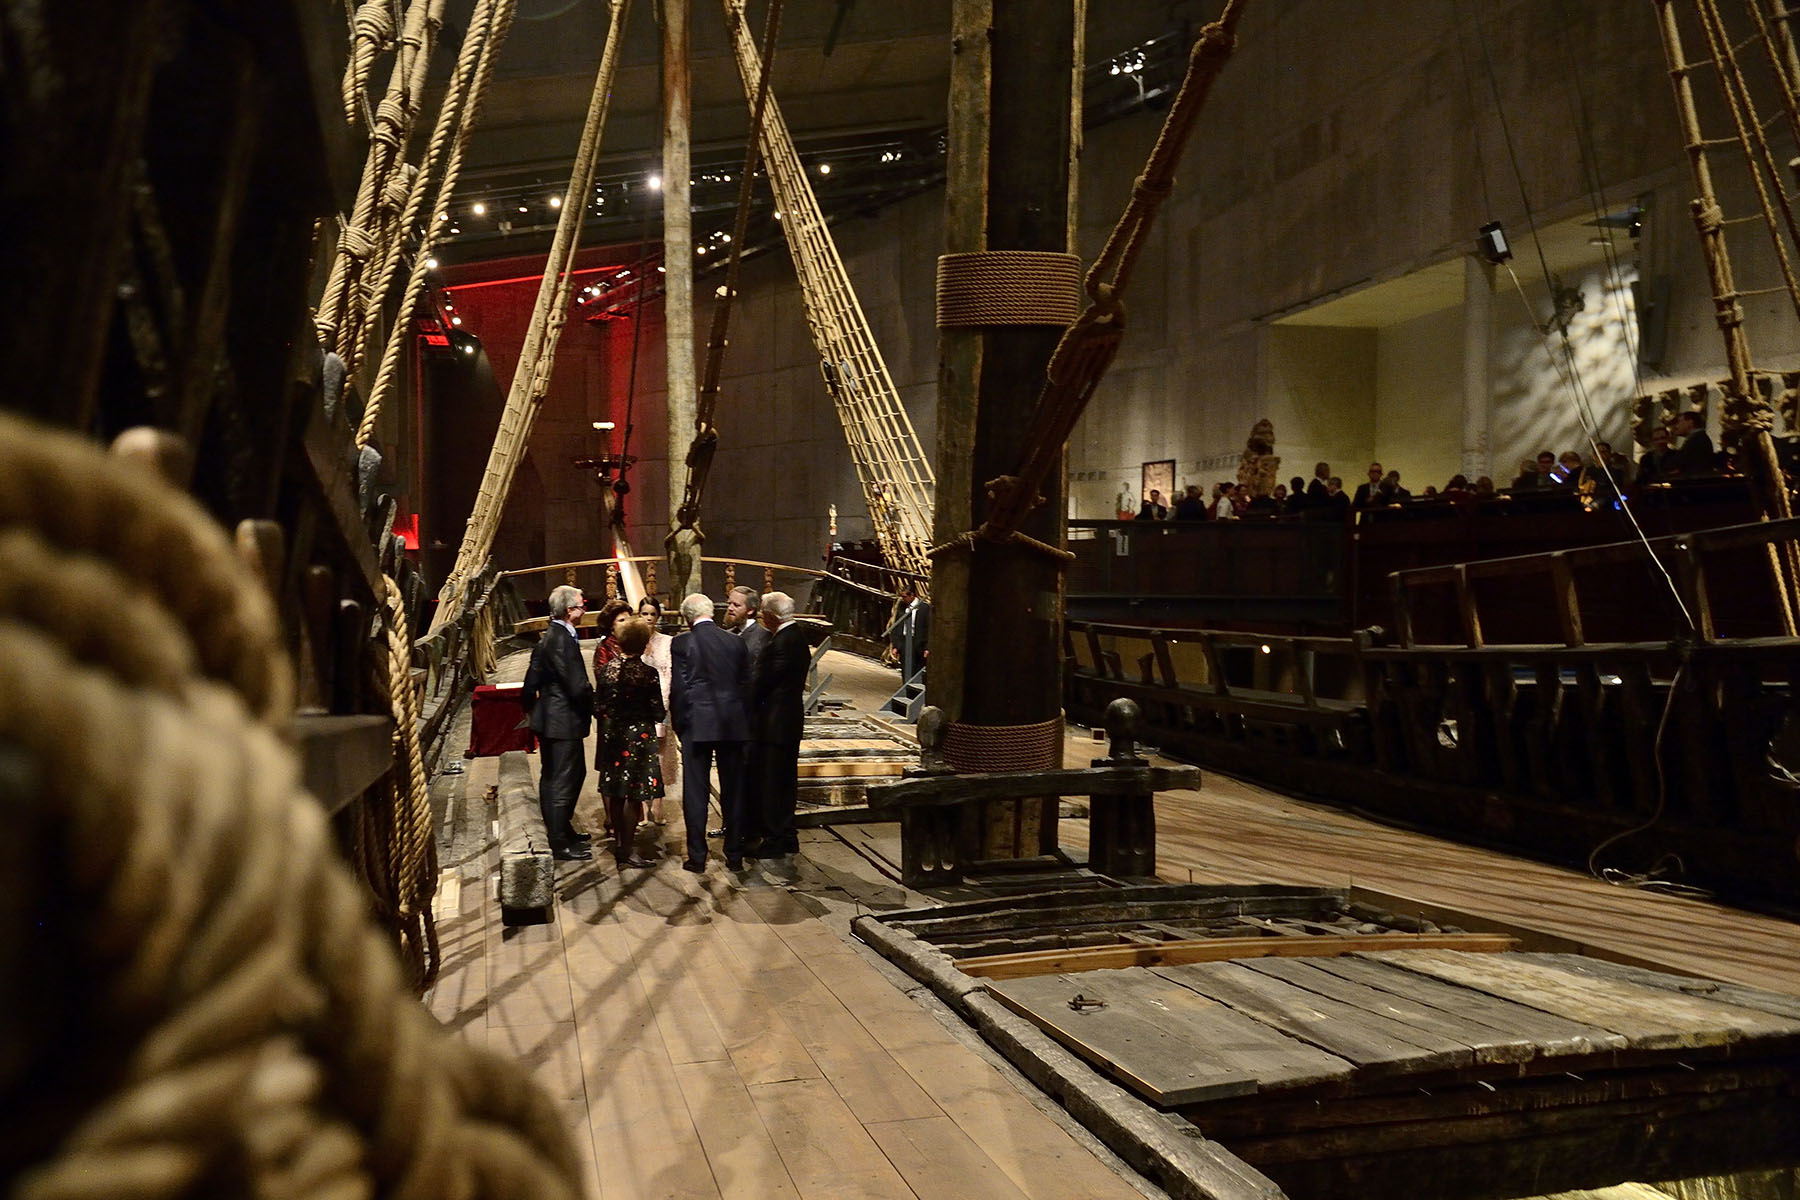 The Vasa Museum is a maritime museum that showcases a 17th century ship that was salvaged.